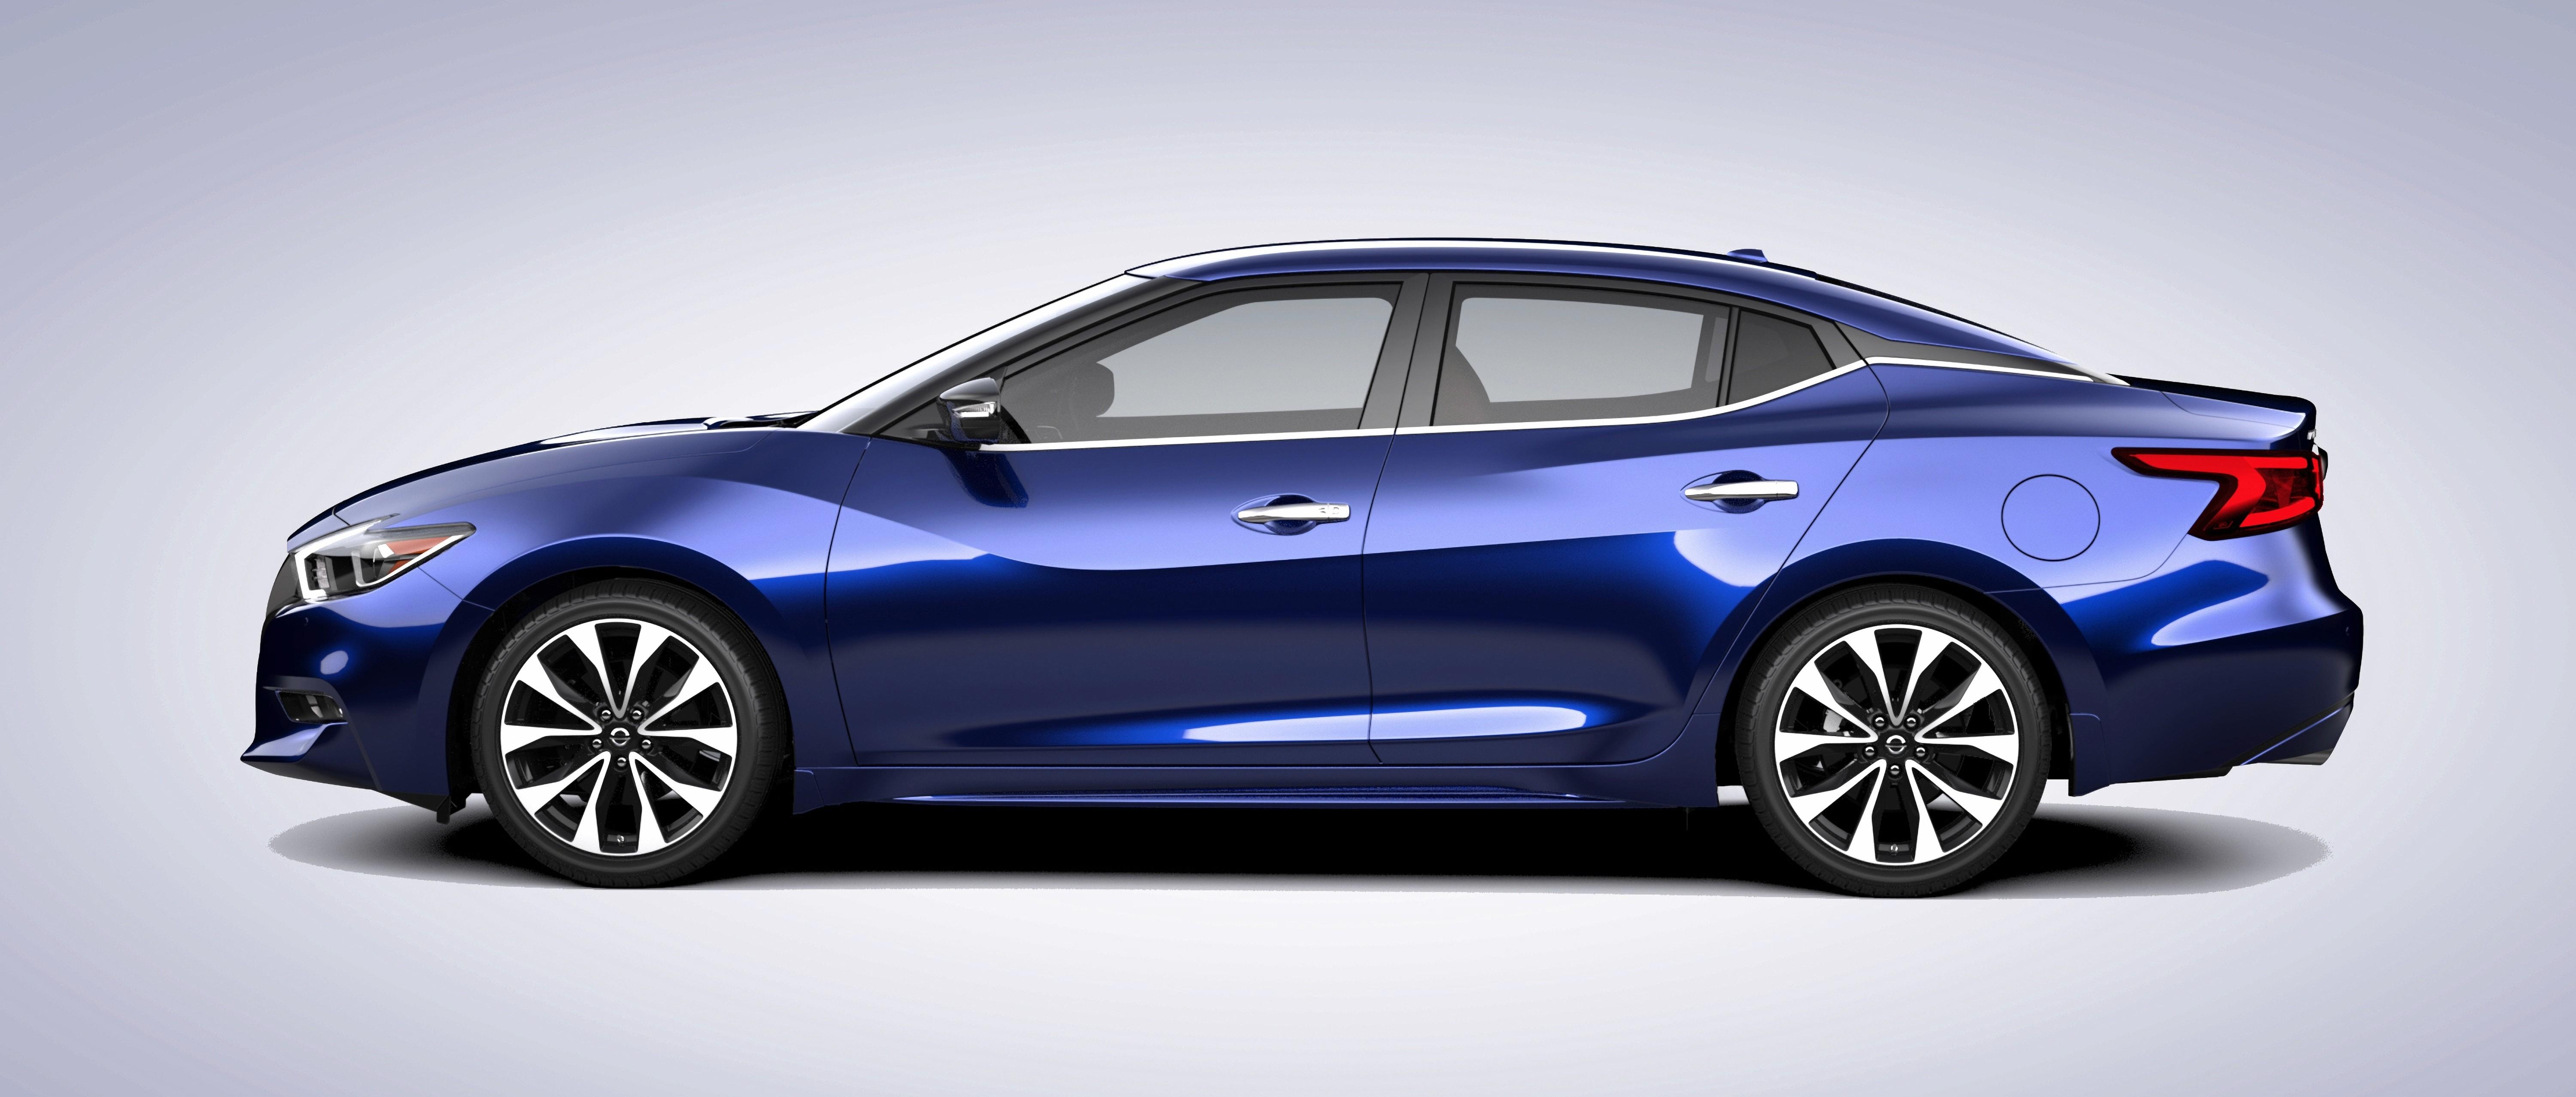 2016 Nissan Maxima Revealed in New York Prices Start at